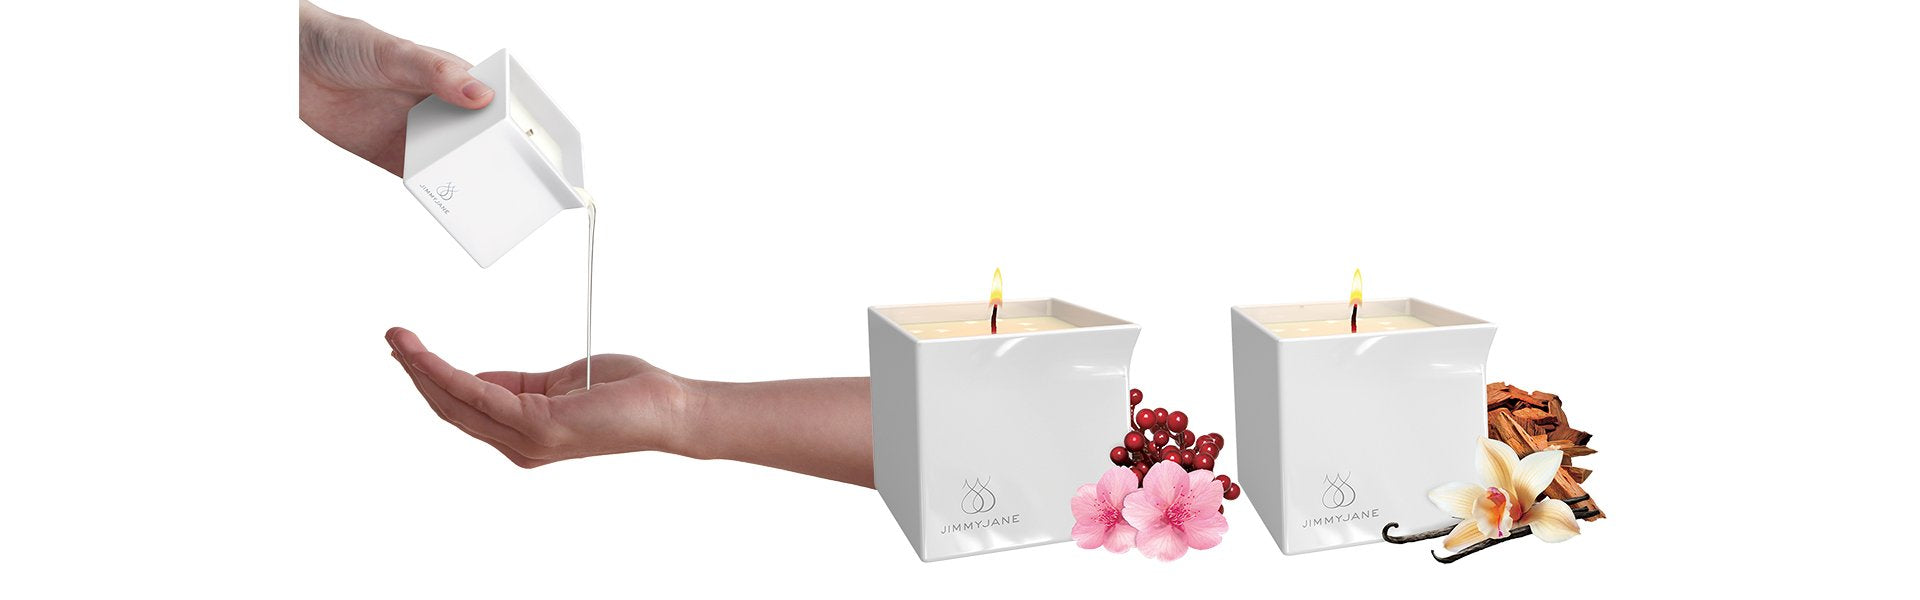 Massage candles JimmyJane hongkong